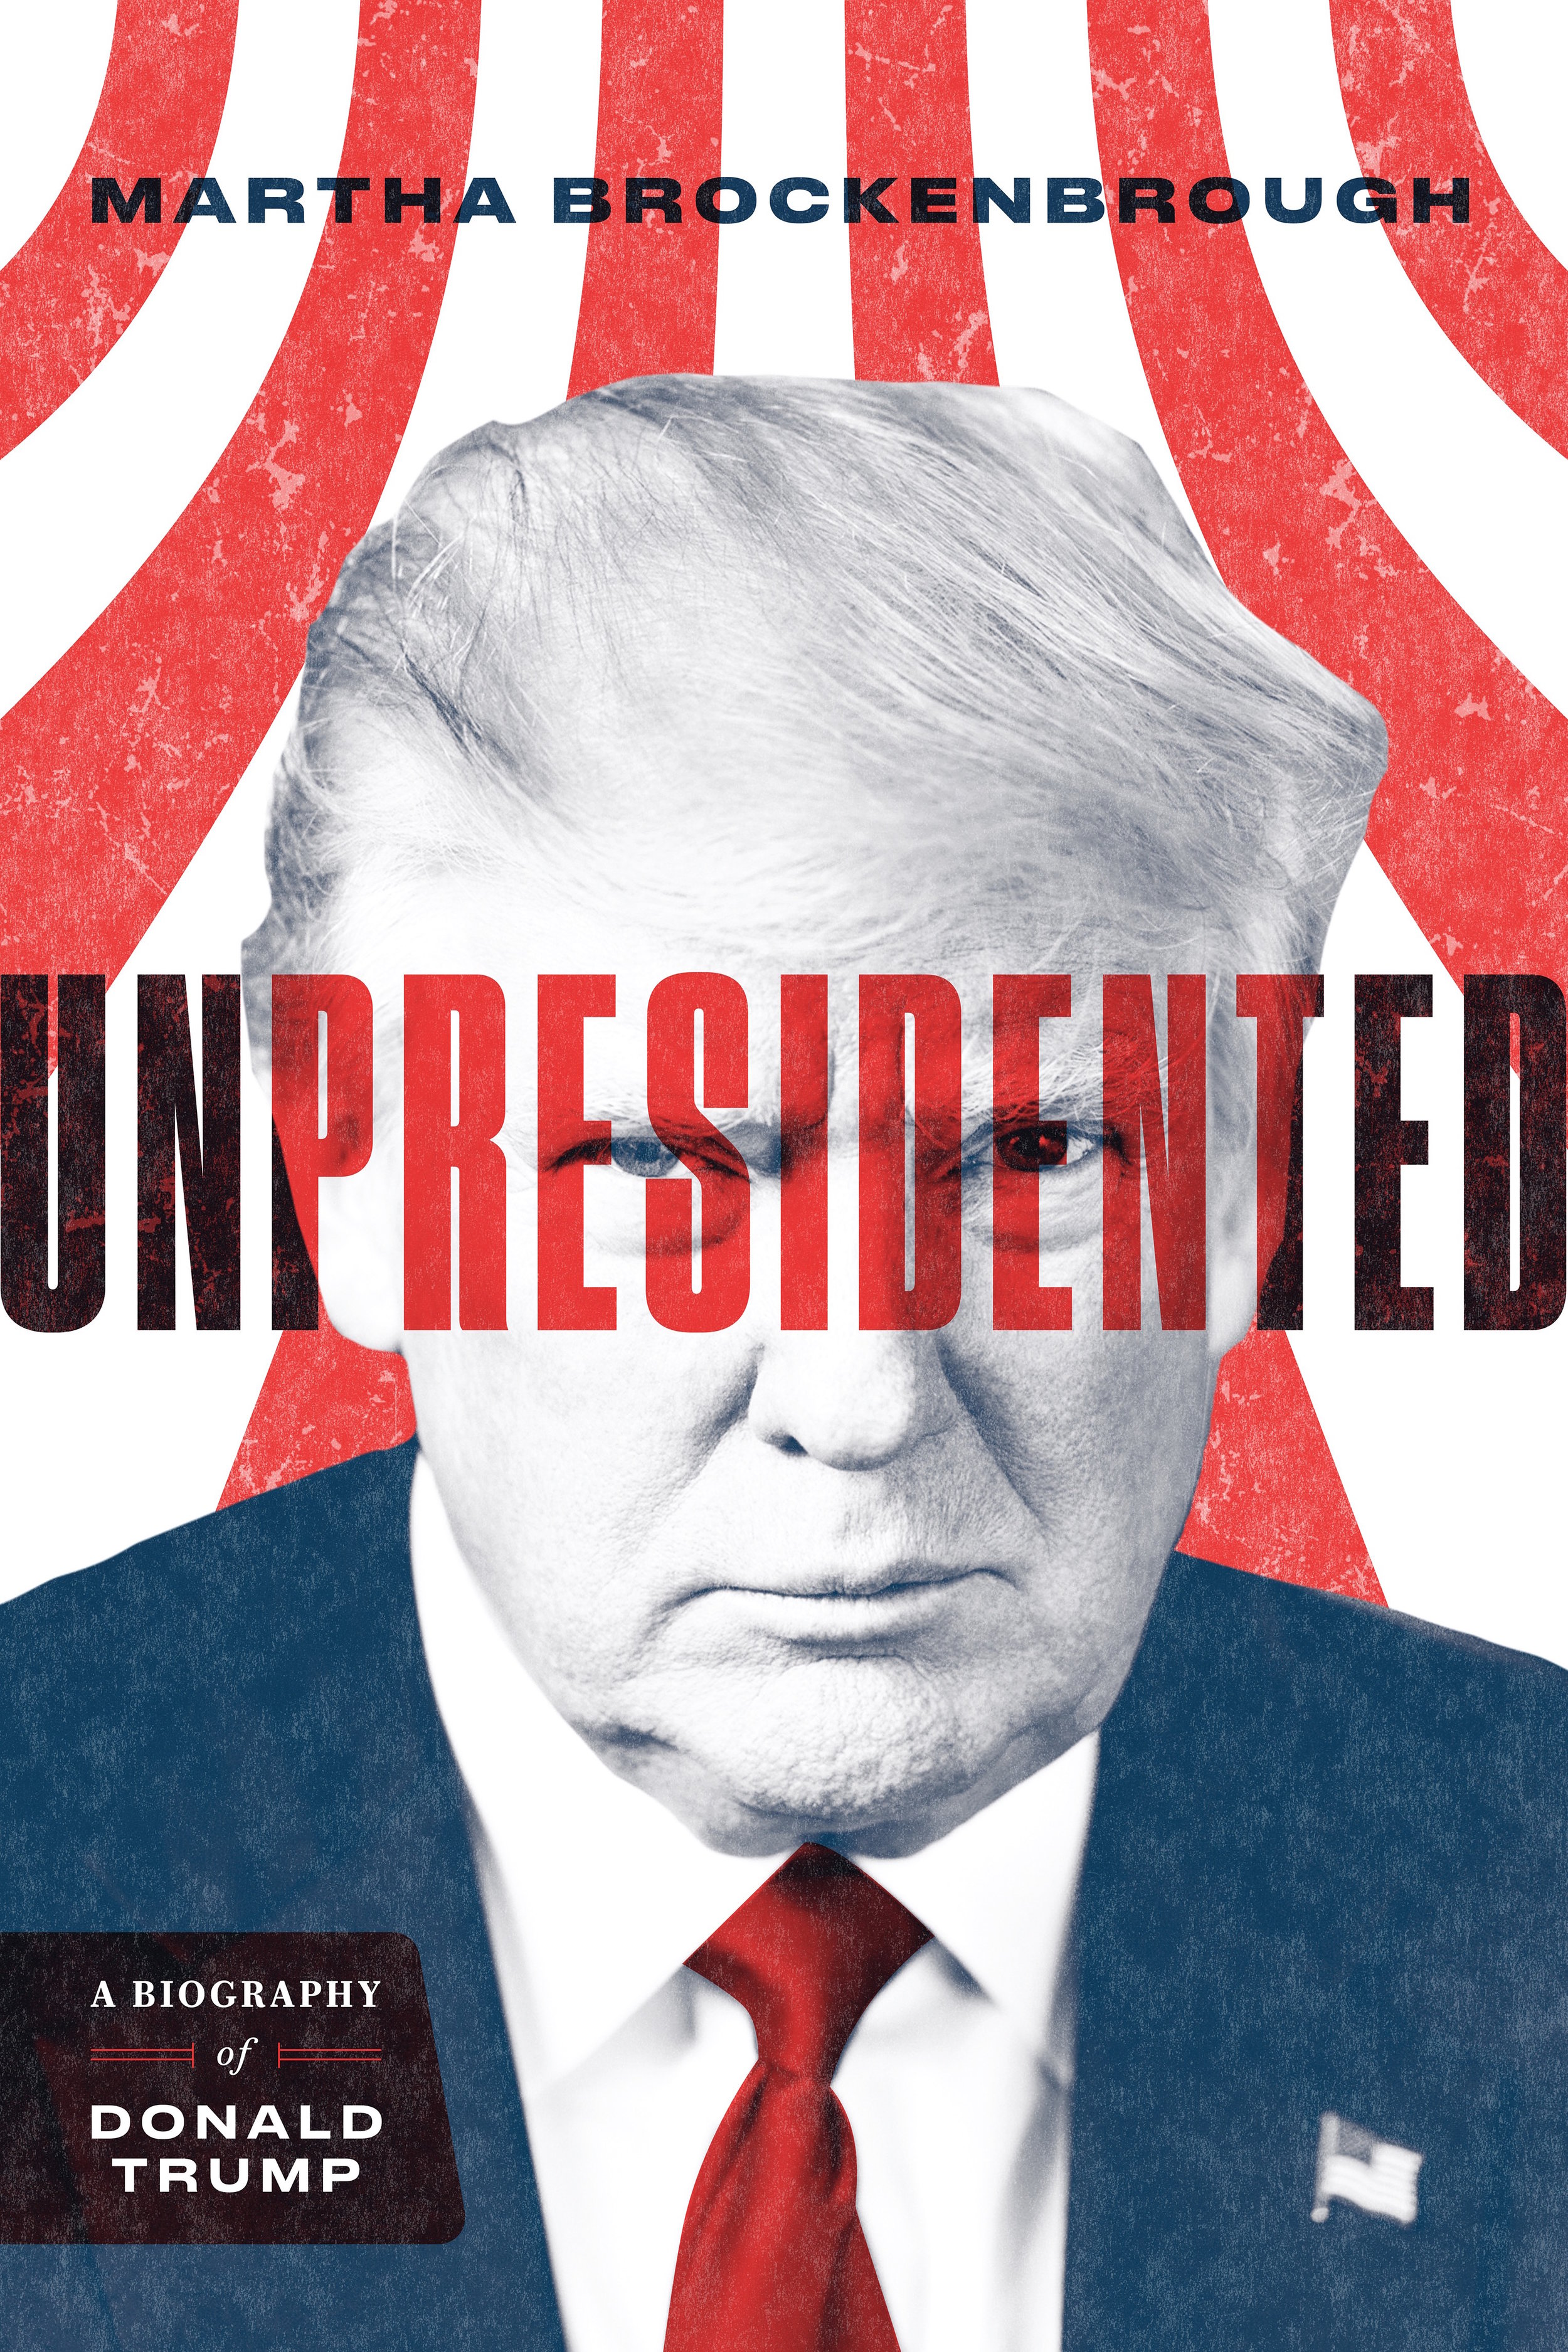 Unpresidented   An unvarnished biography of Donald Trump, his family history, his business history, and the key points of his campaign and first year and a half in office.